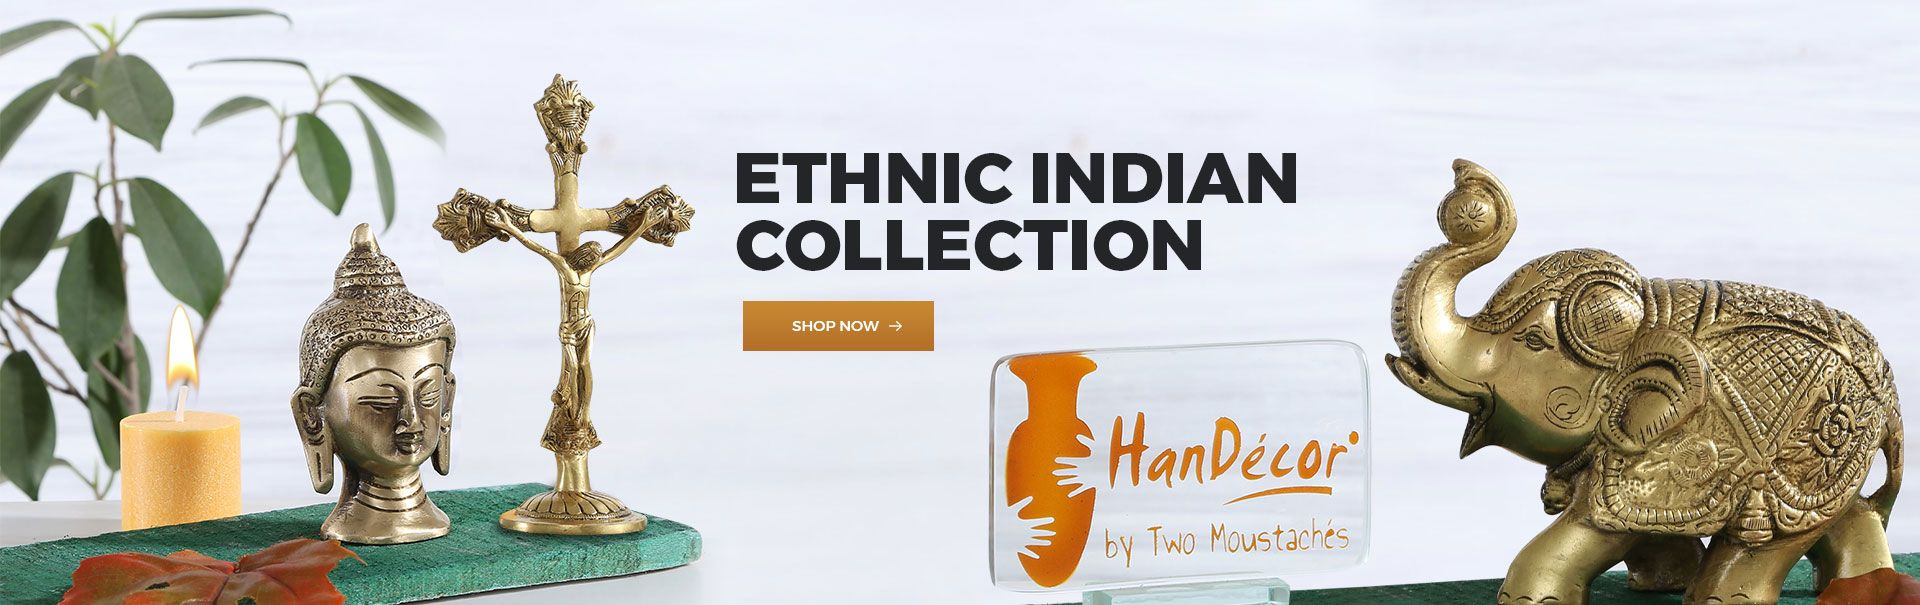 ETHNIC INDIAN COLLECTION